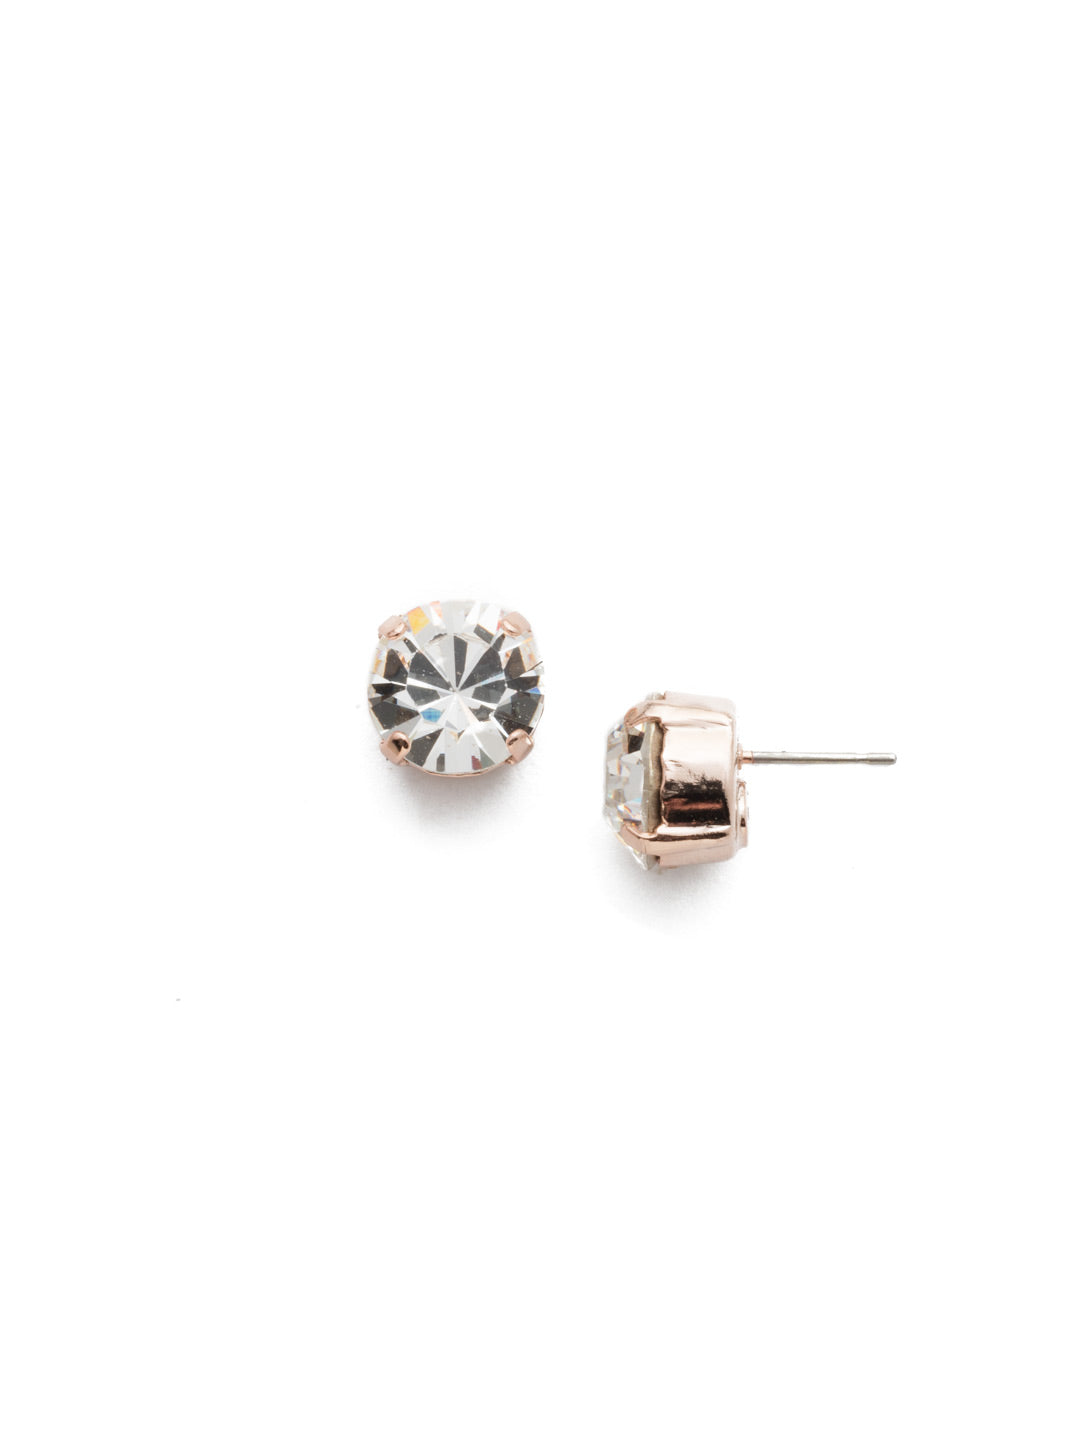 Round Crystal Stud Earrings - ECM14RGCRY